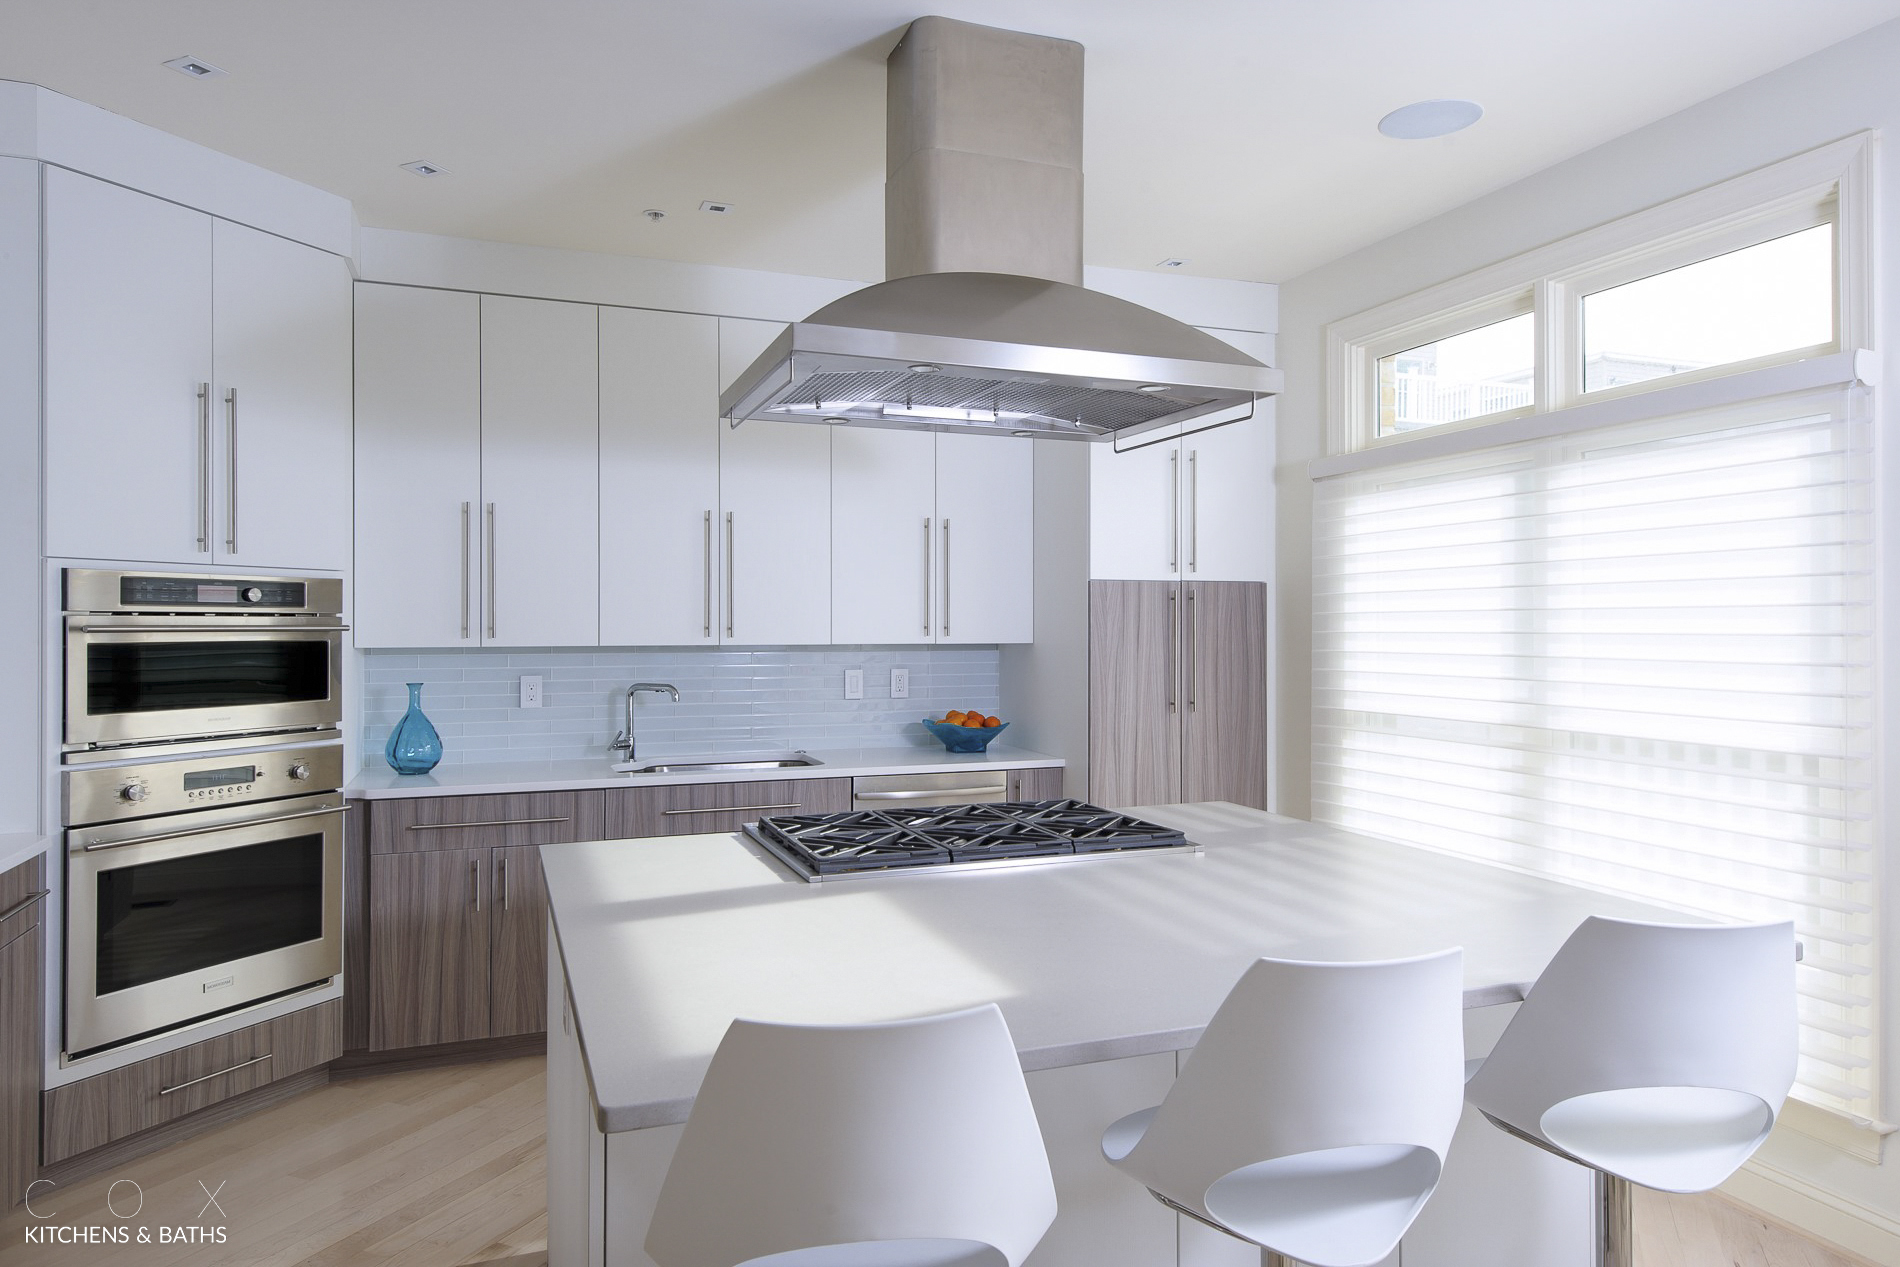 baltimore kitchen remodeling no touch faucet modern inner harbor cox kitchens and baths